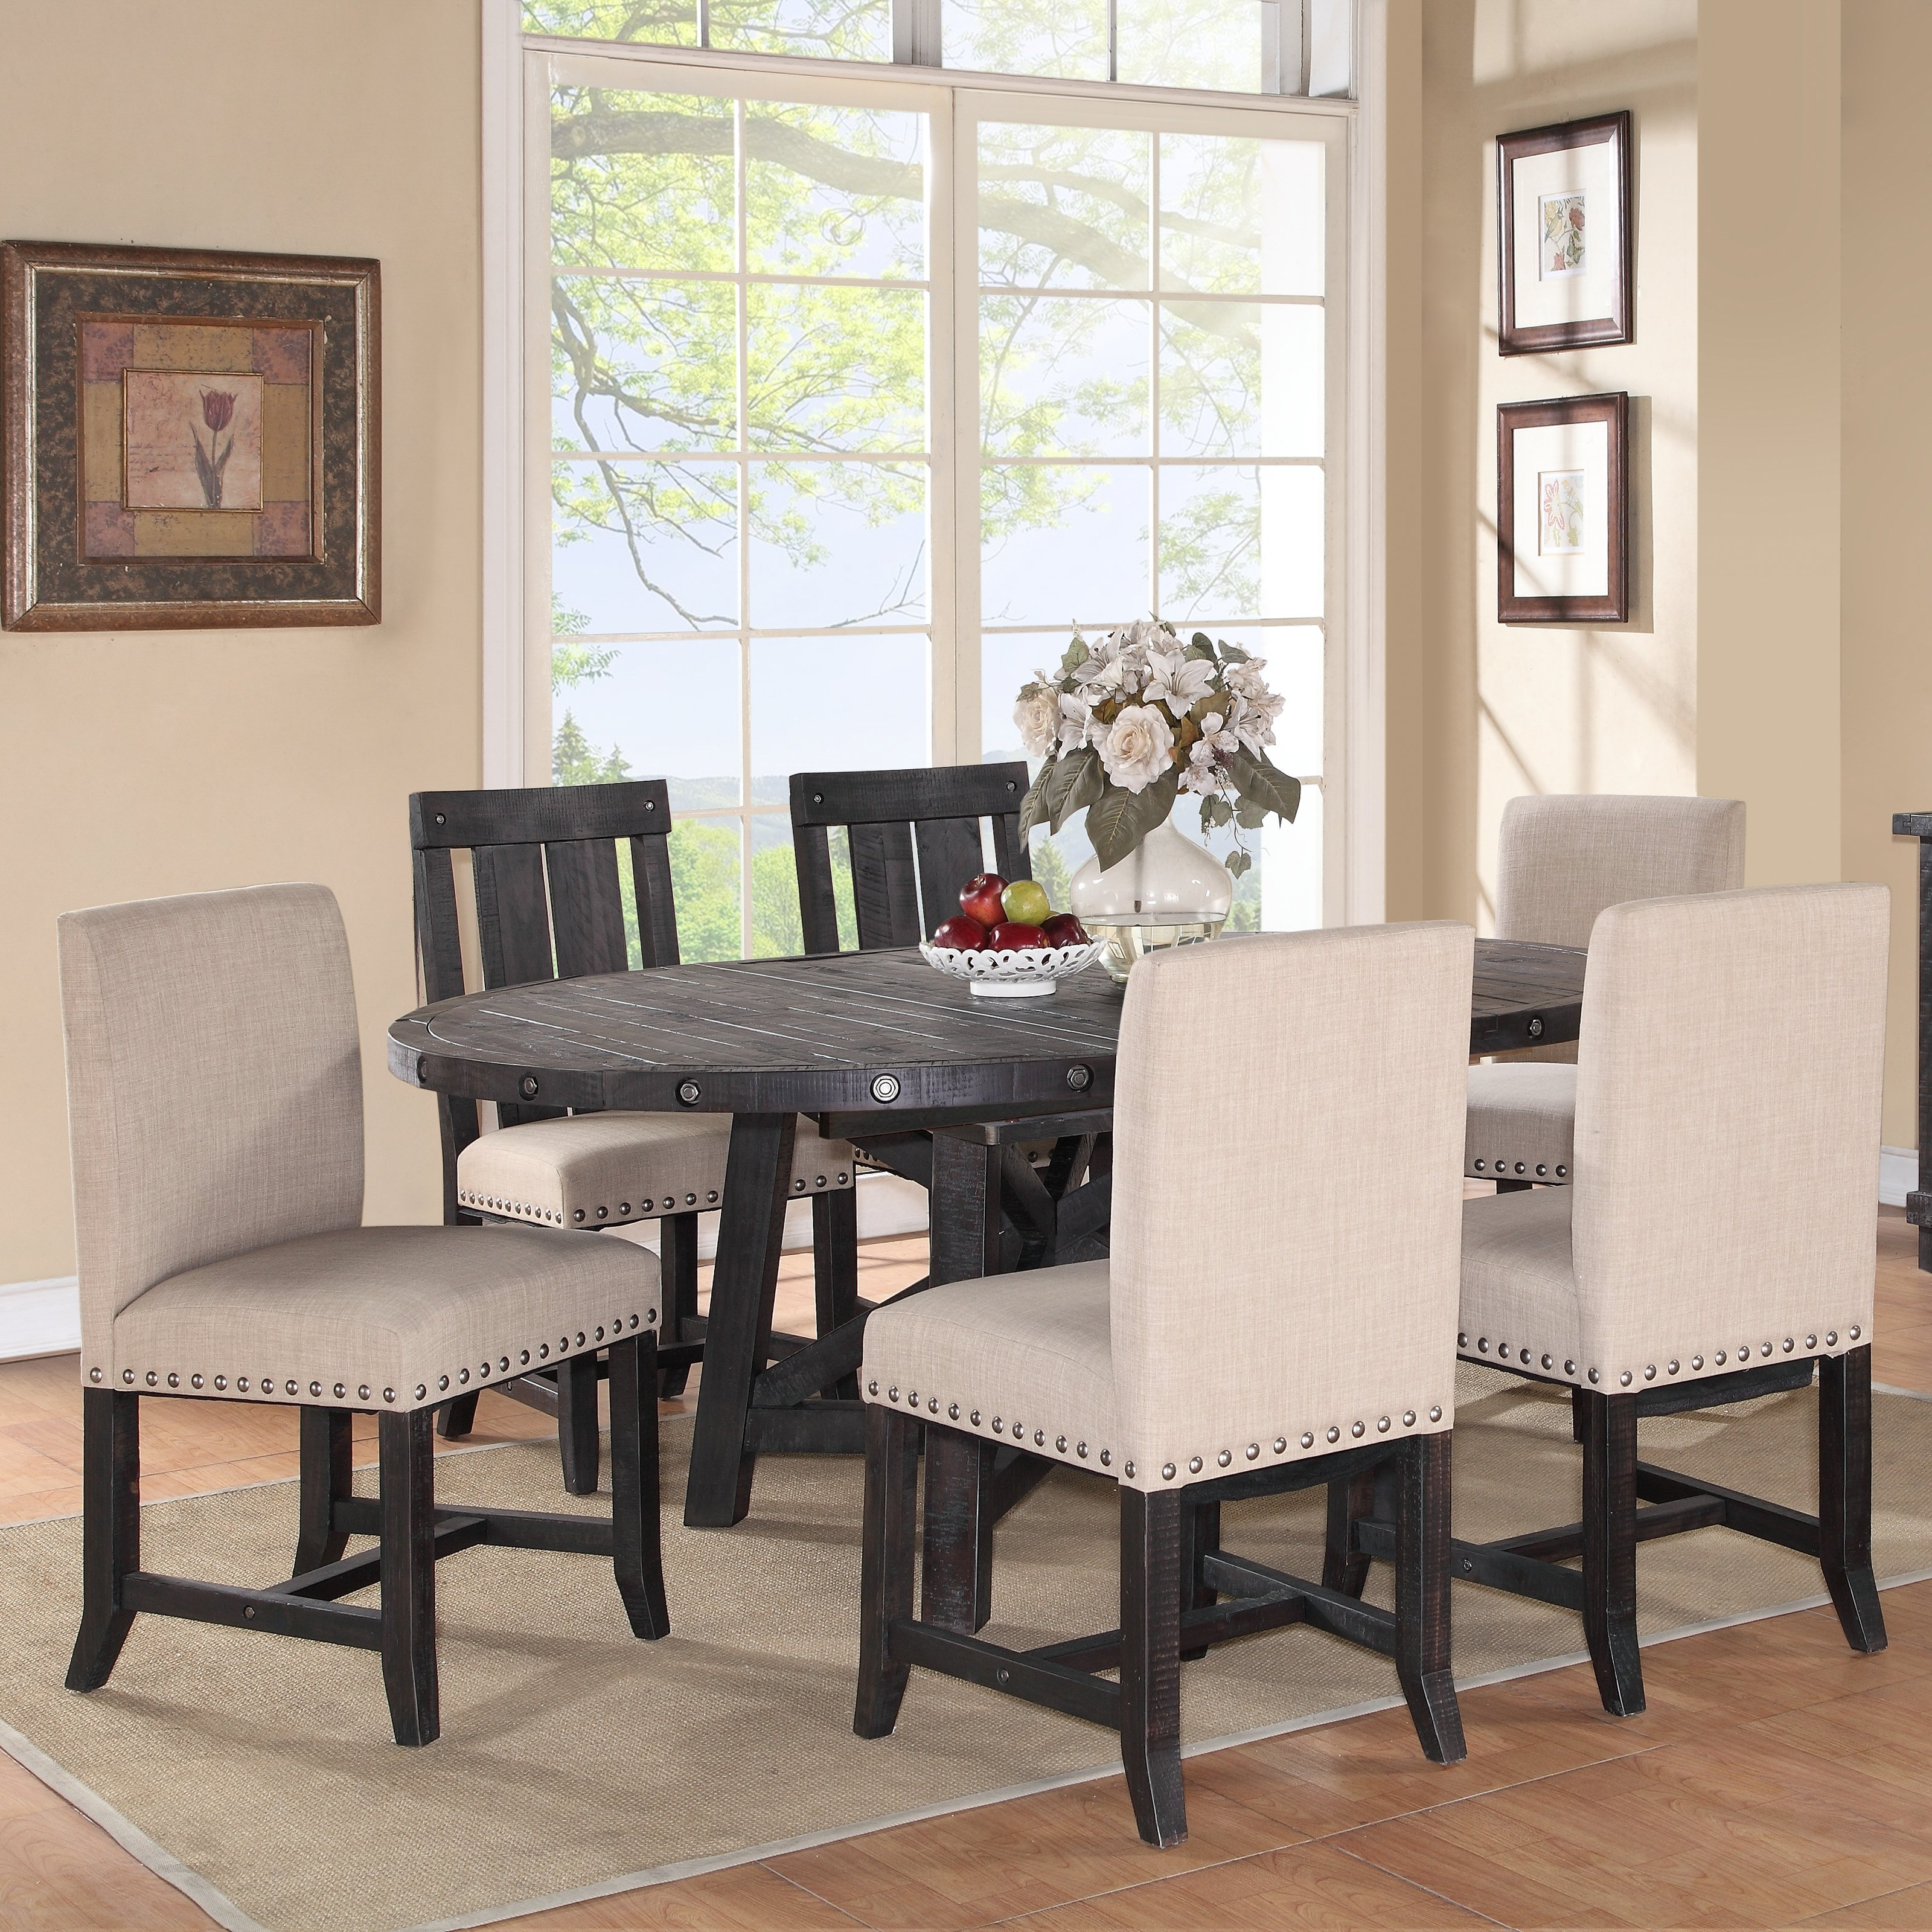 Modus Yosemite 7 Piece Oval Dining Table Set With Mixed Chairs   4  Upholstered U0026amp;